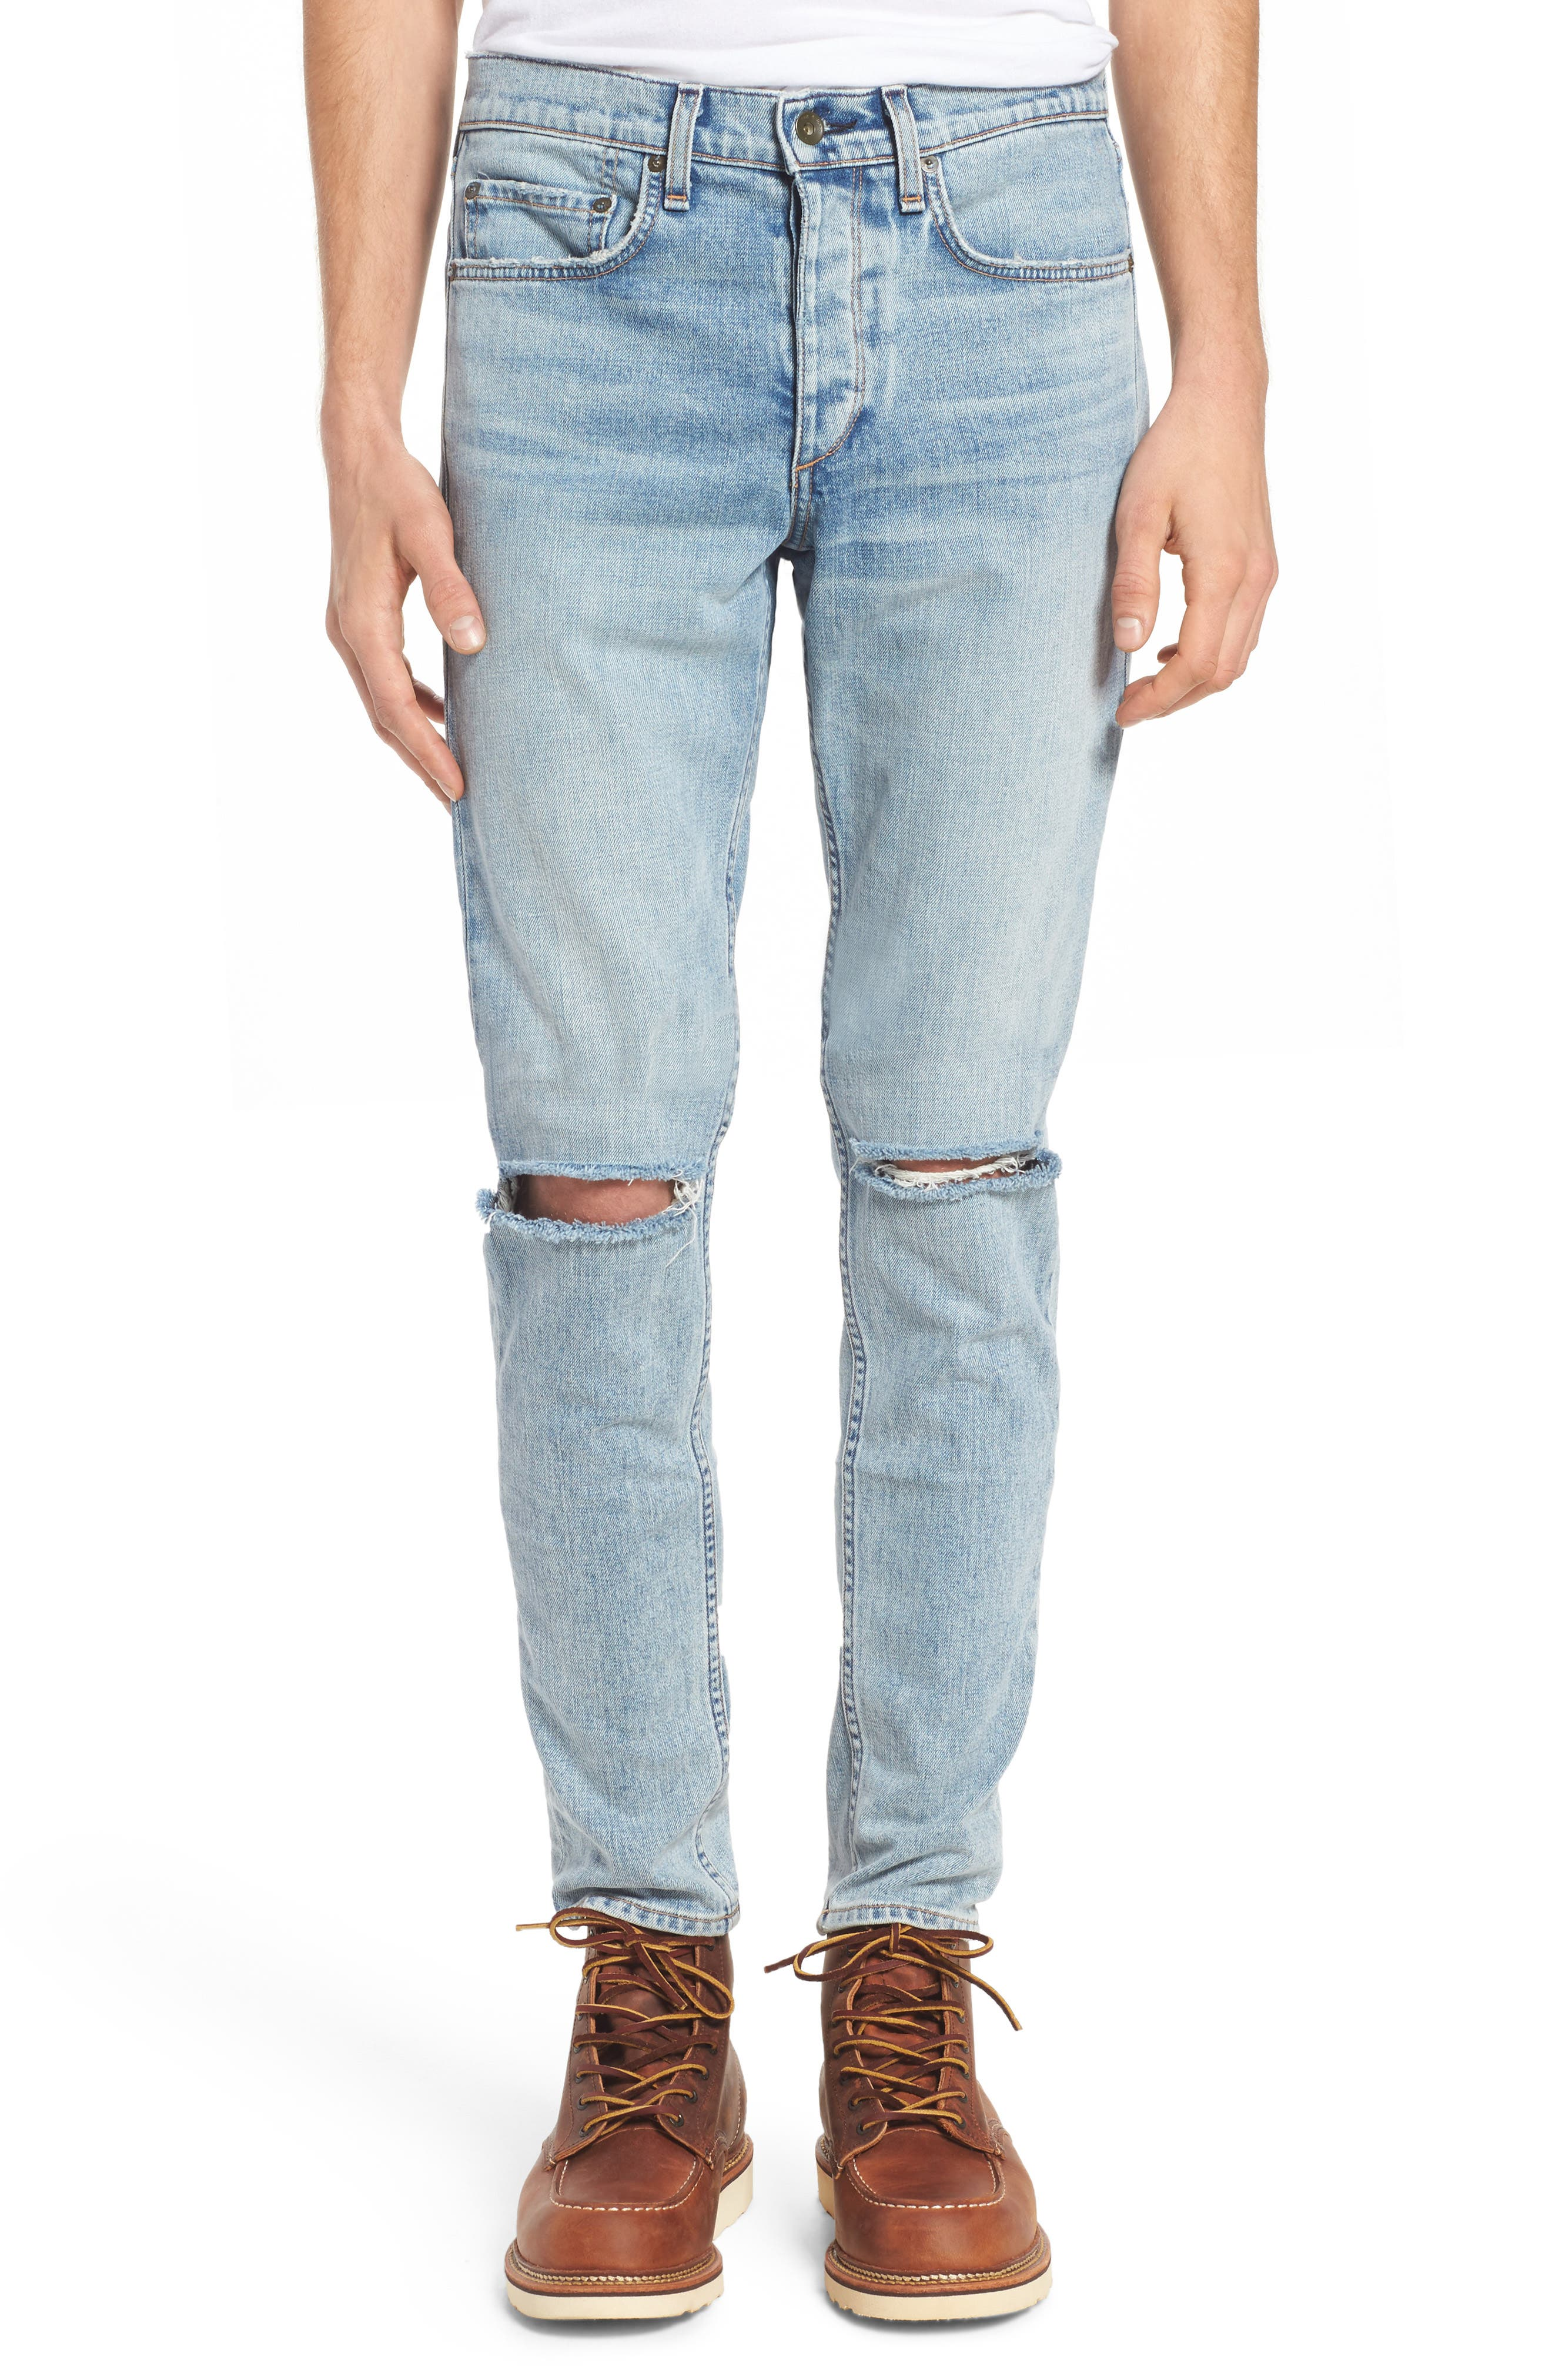 Fit 1 Skinny Fit Jeans,                             Main thumbnail 1, color,                             Jameson With Holes